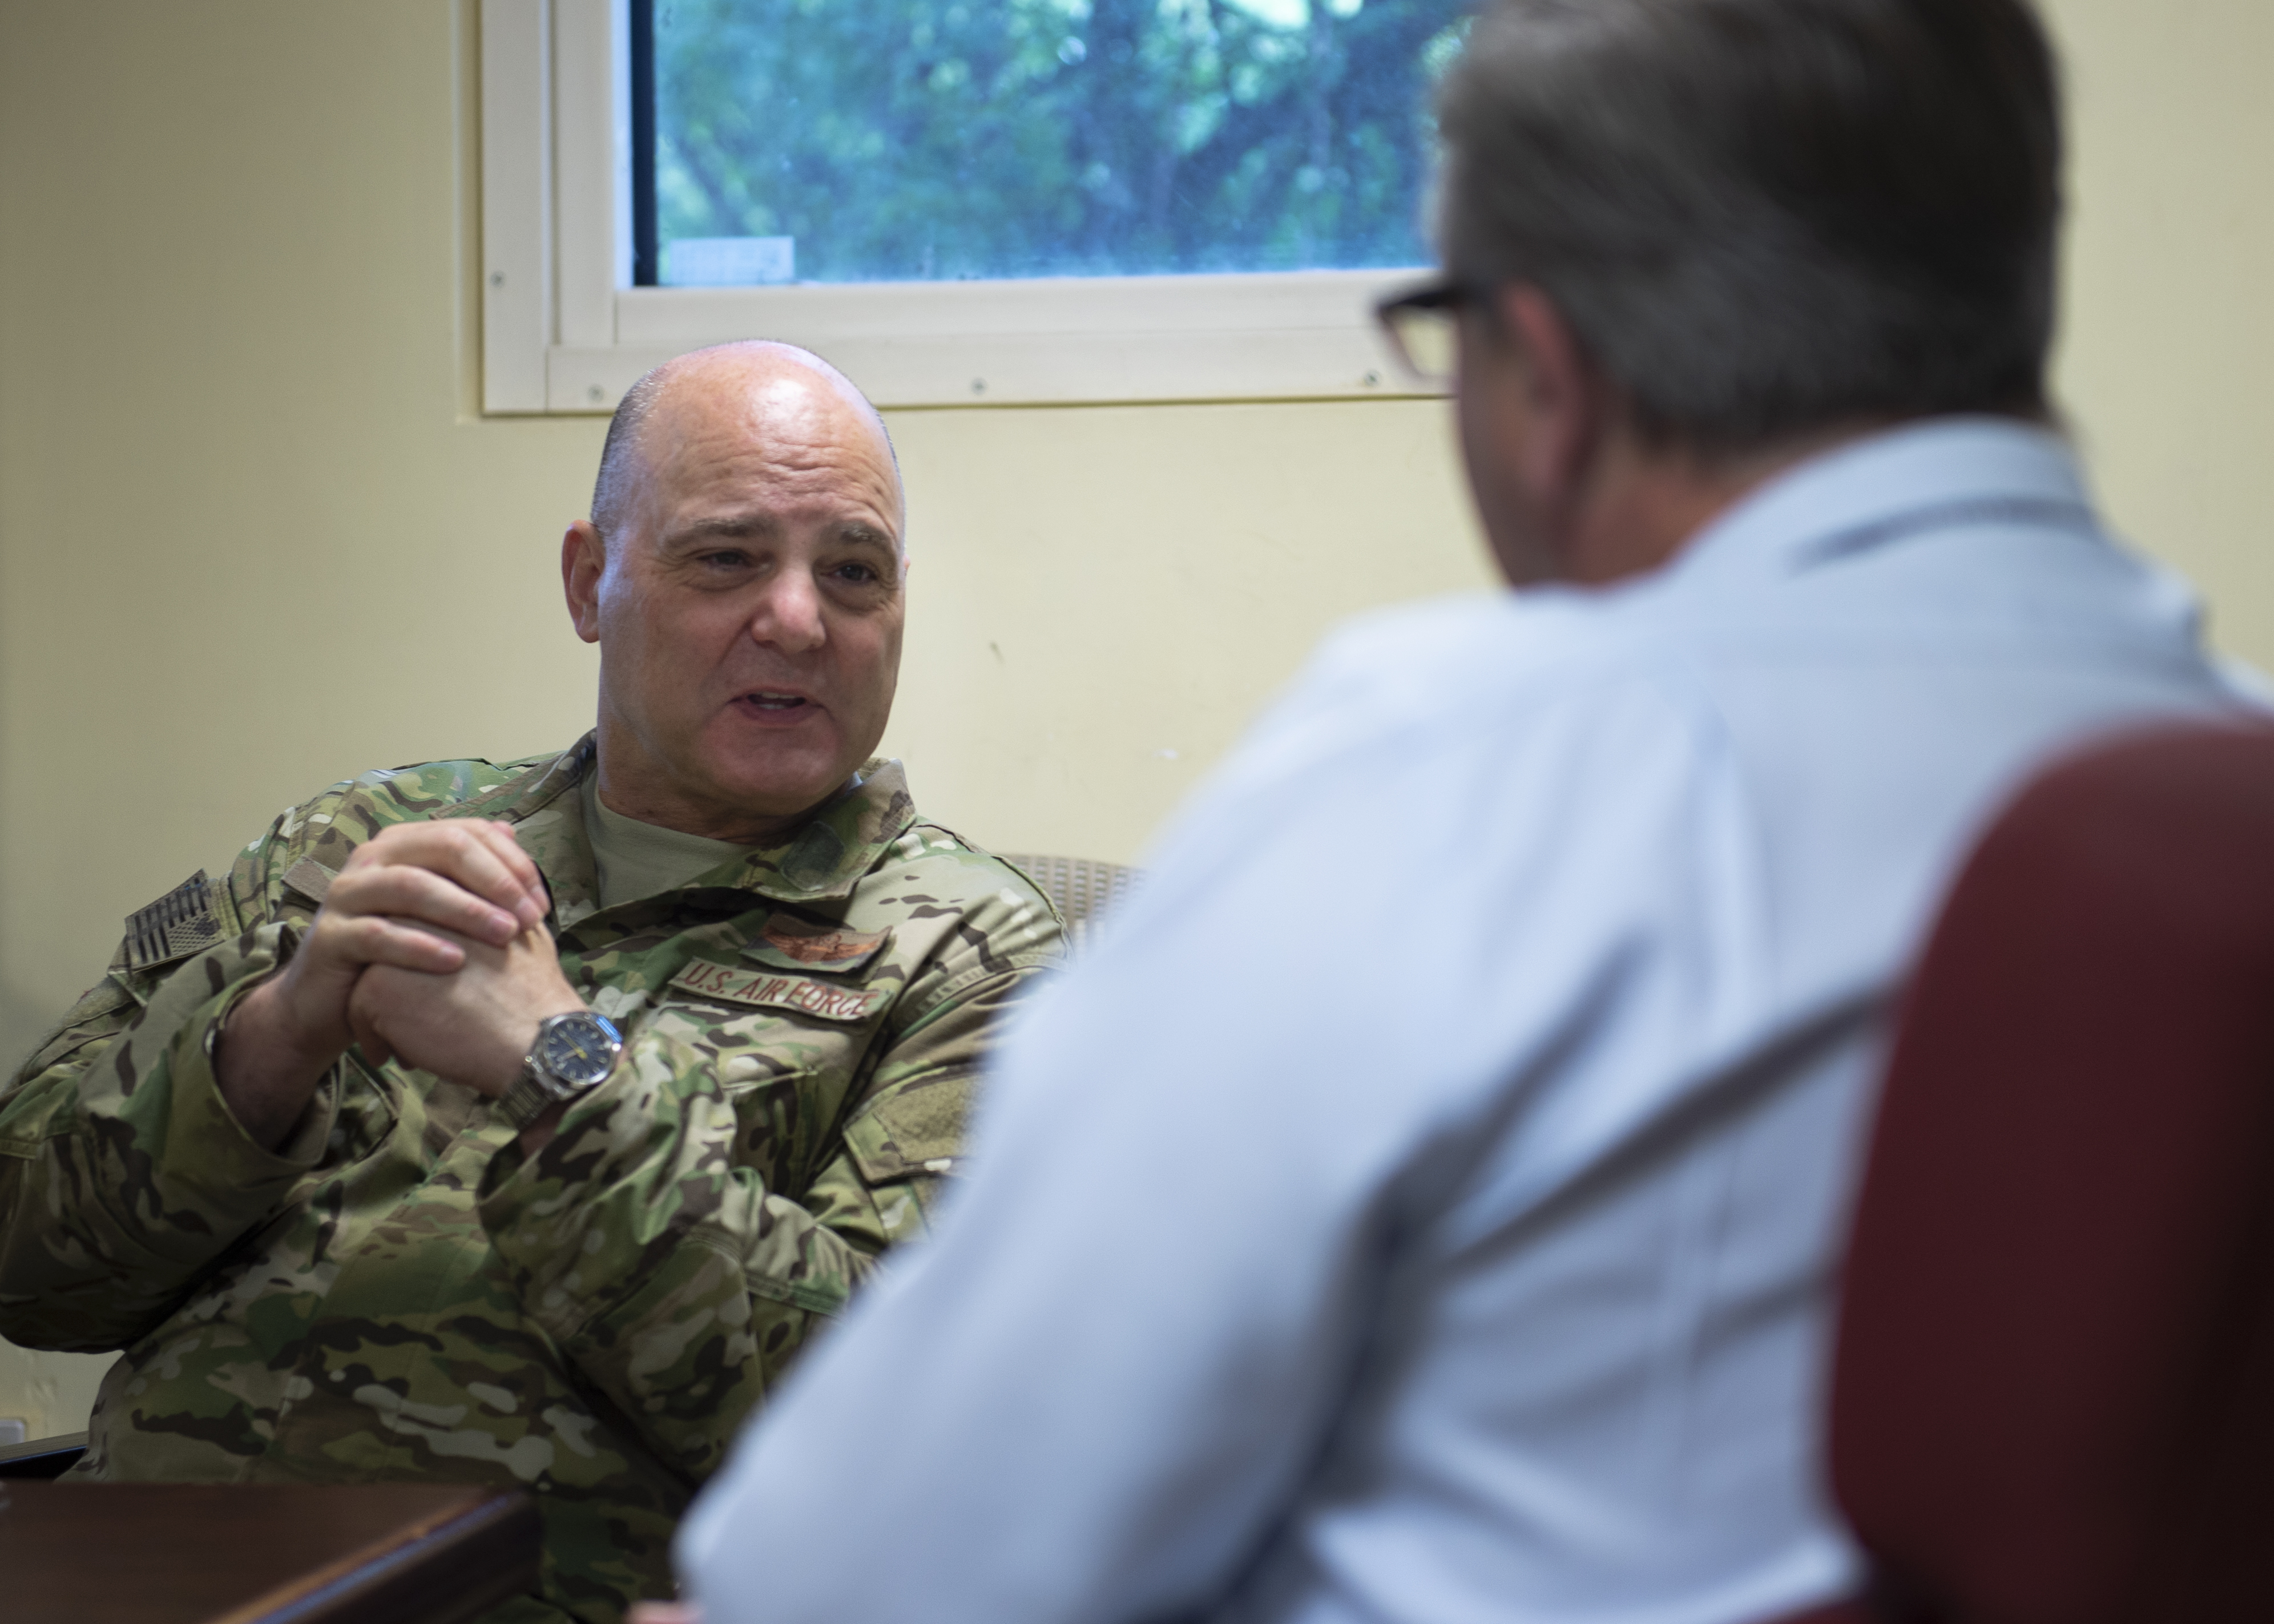 U.S. Air Force Brig. Gen. James R. Kriesel, deputy commanding general of Combined Joint Task Force-Horn of Africa (CJTF-HOA), meets with James Hope, United Stated Agency for International Development (USAID) country director, in Juba, South Sudan, Aug. 15, 2019. Kriesel and Hope discussed the kinds of assistance that USAID is providing the country, mainly through food aid. (U.S. Air Force Photo by Senior Airman Codie Trimble)